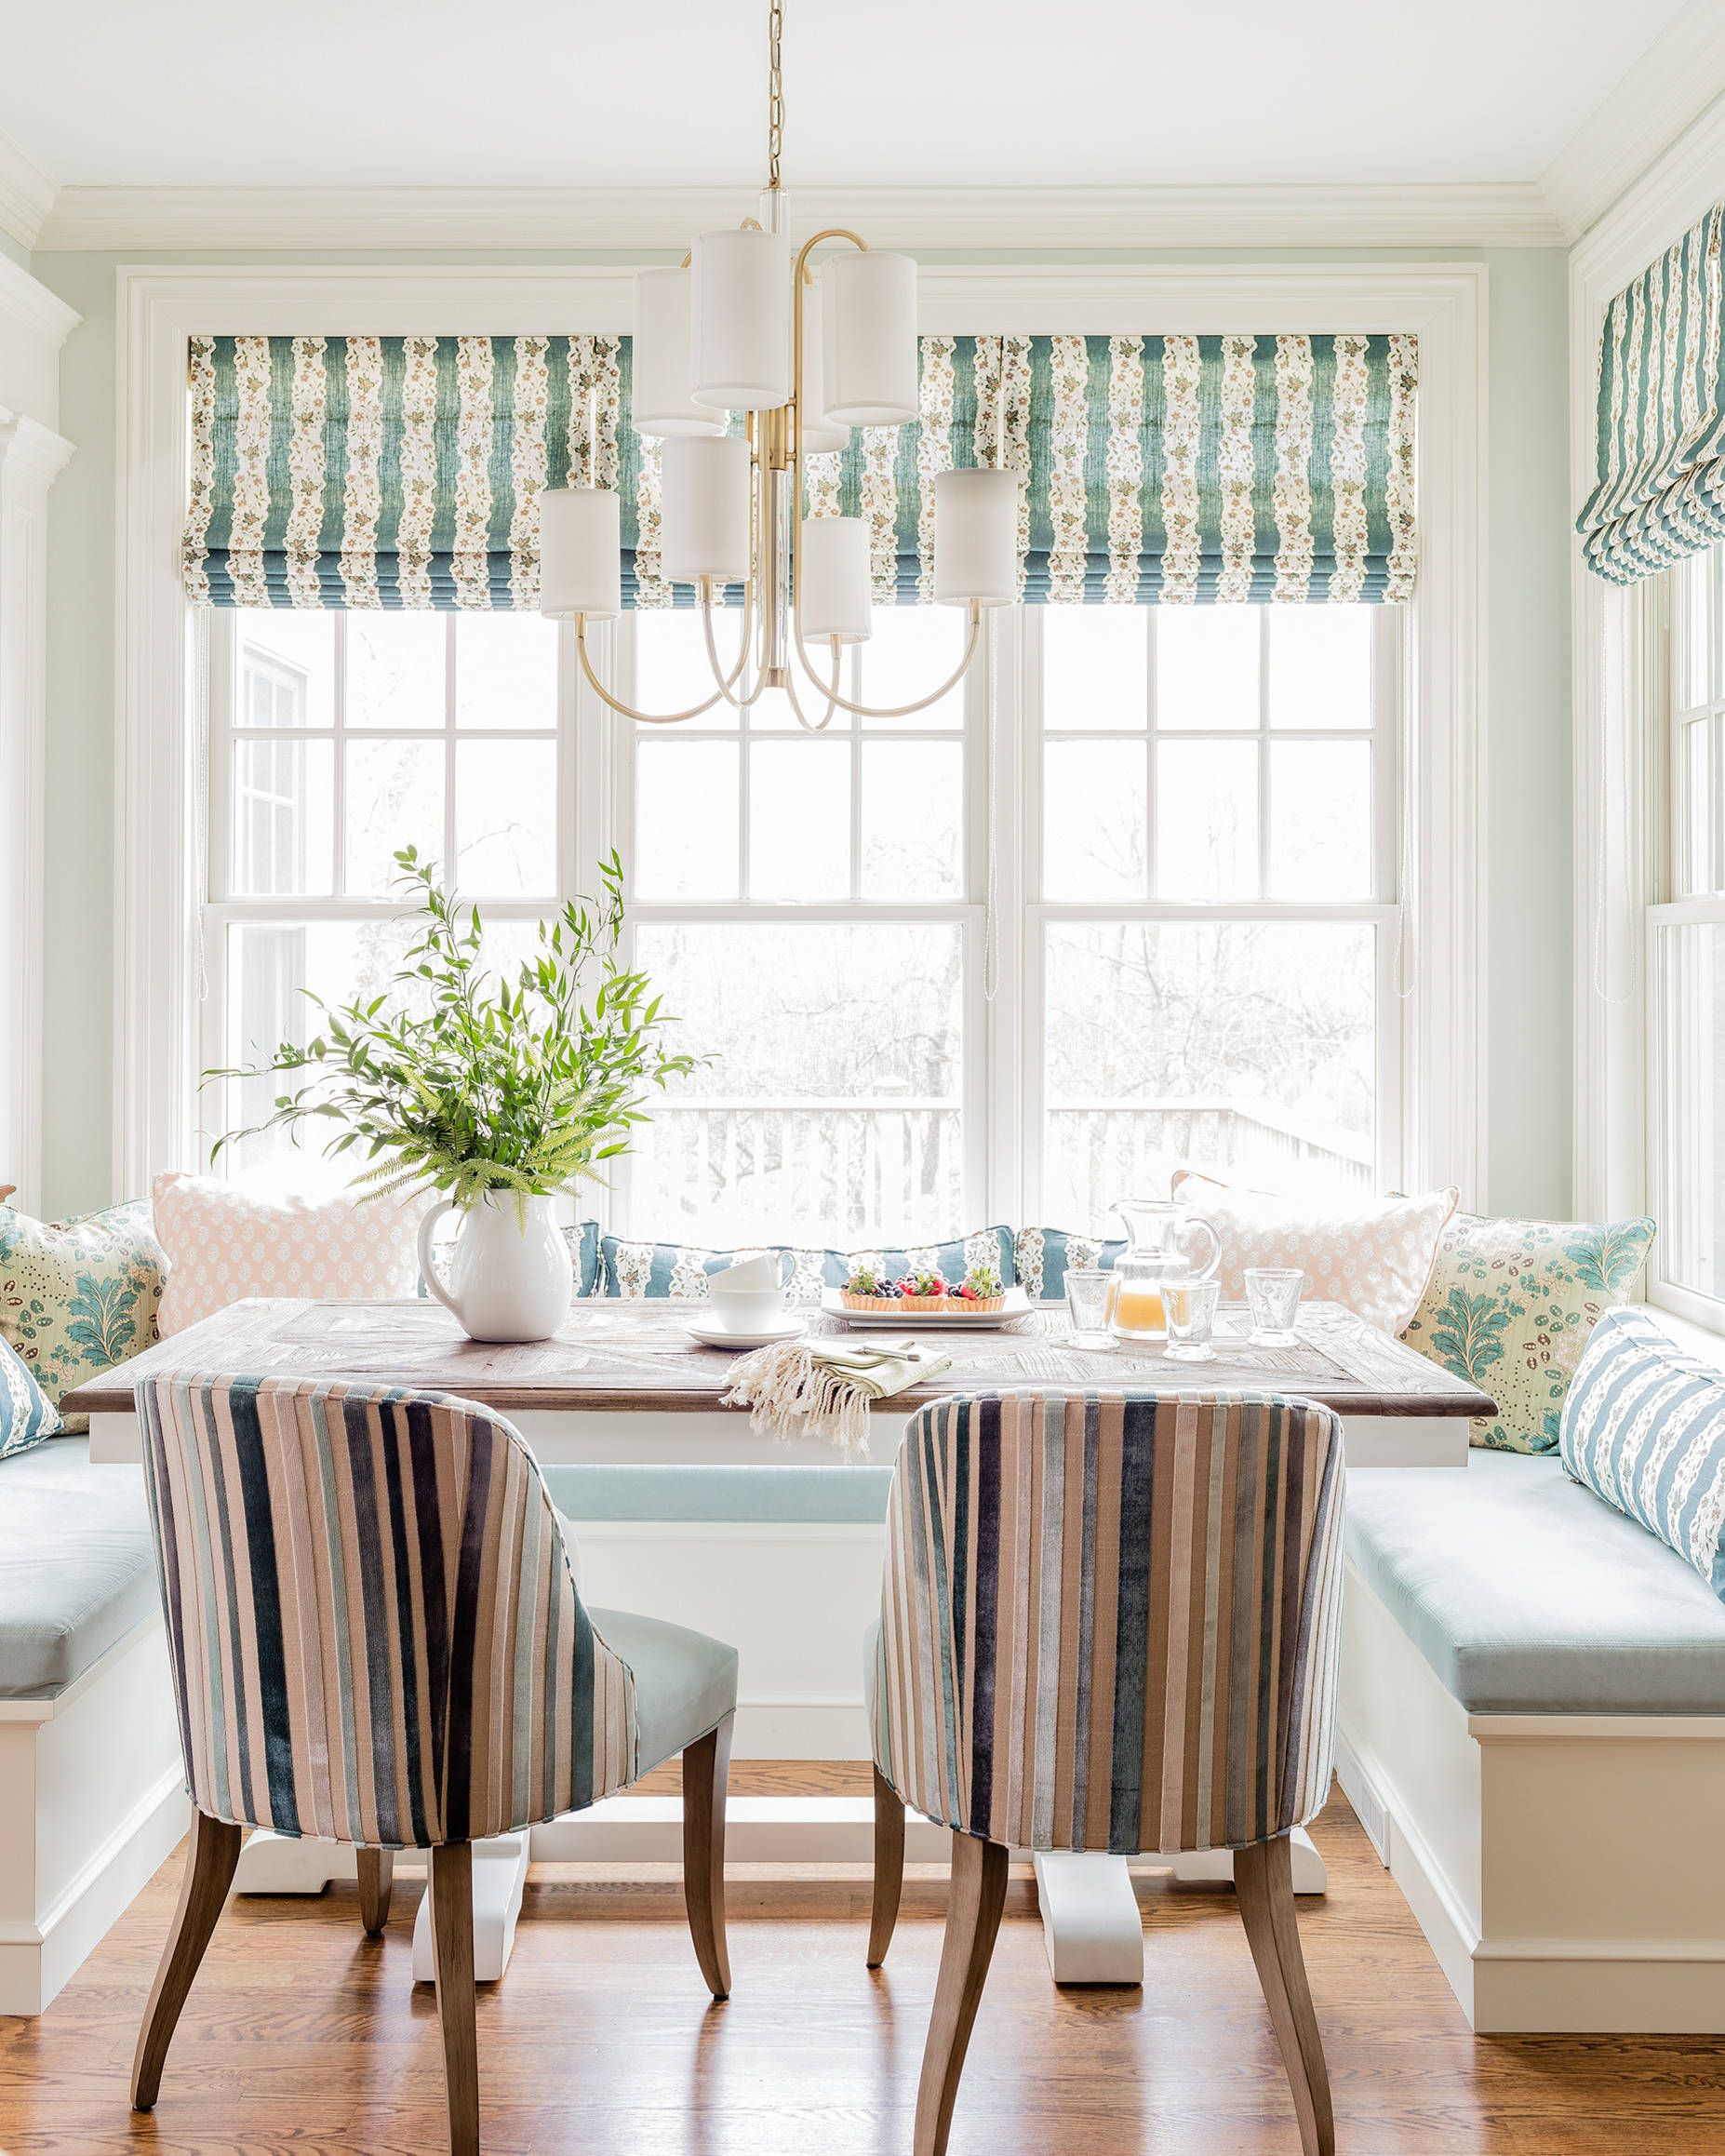 Patterned breakfast nook shades pillows